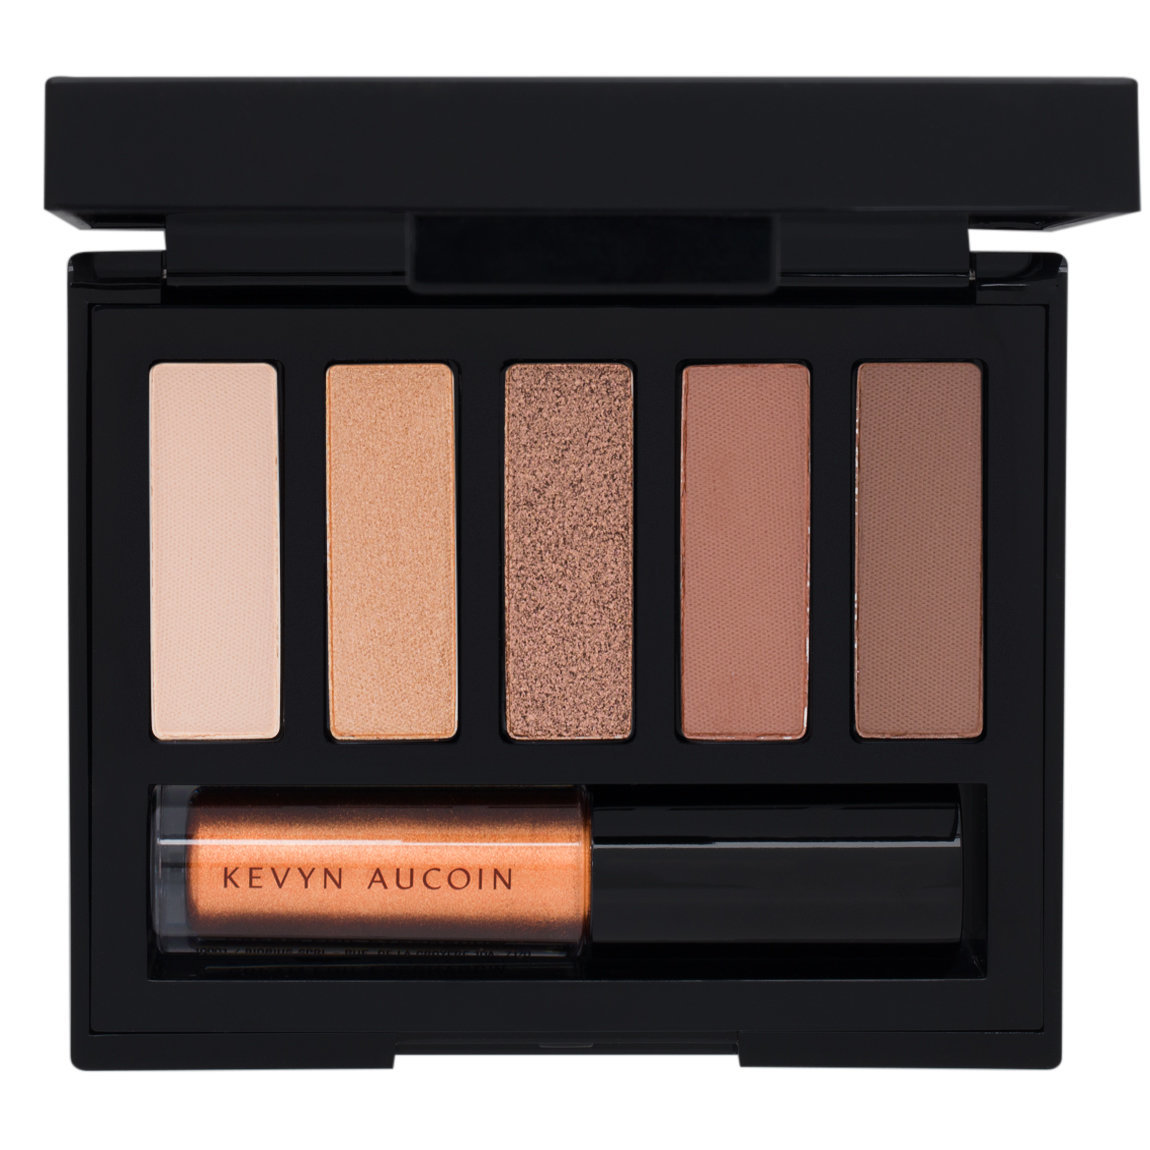 Kevyn Aucoin Emphasize Eye Design Palettes Focused alternative view 1 - product swatch.